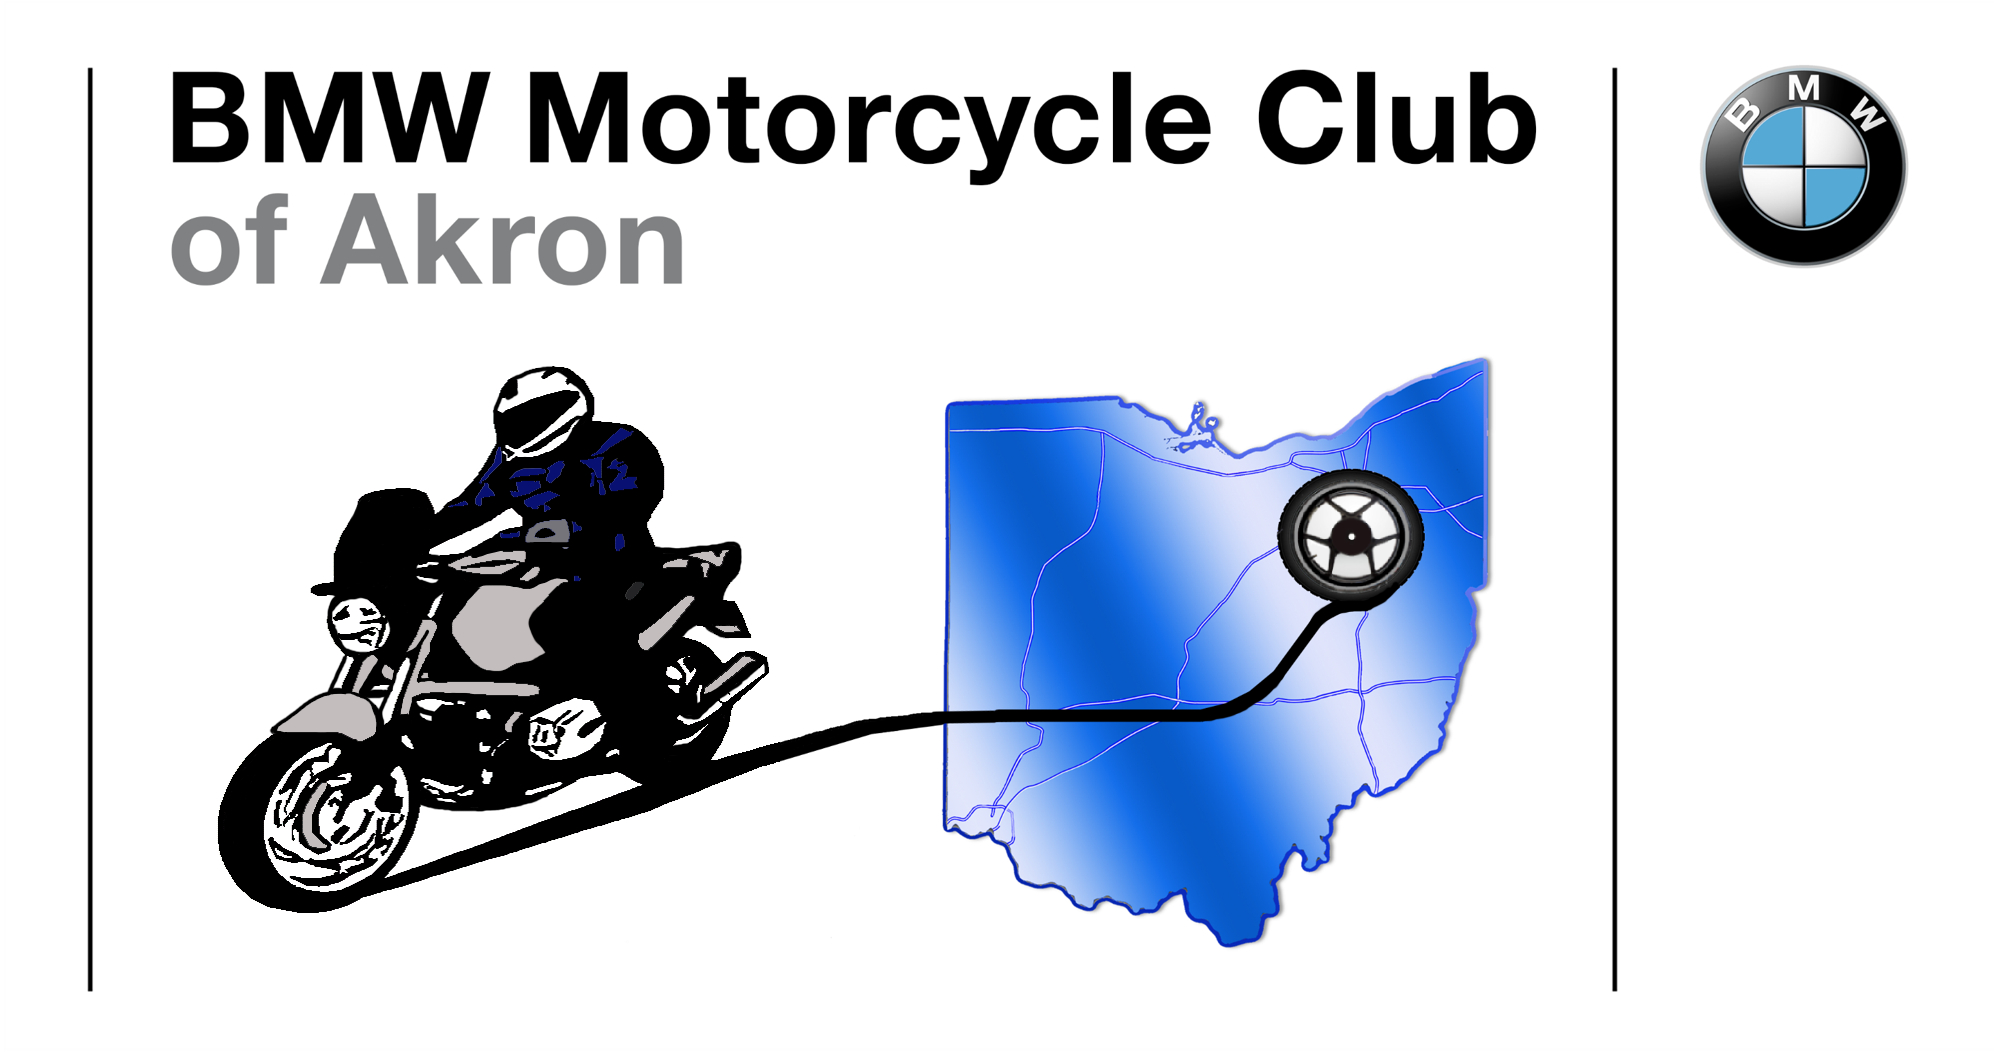 Akron BMW Motorcycle Club